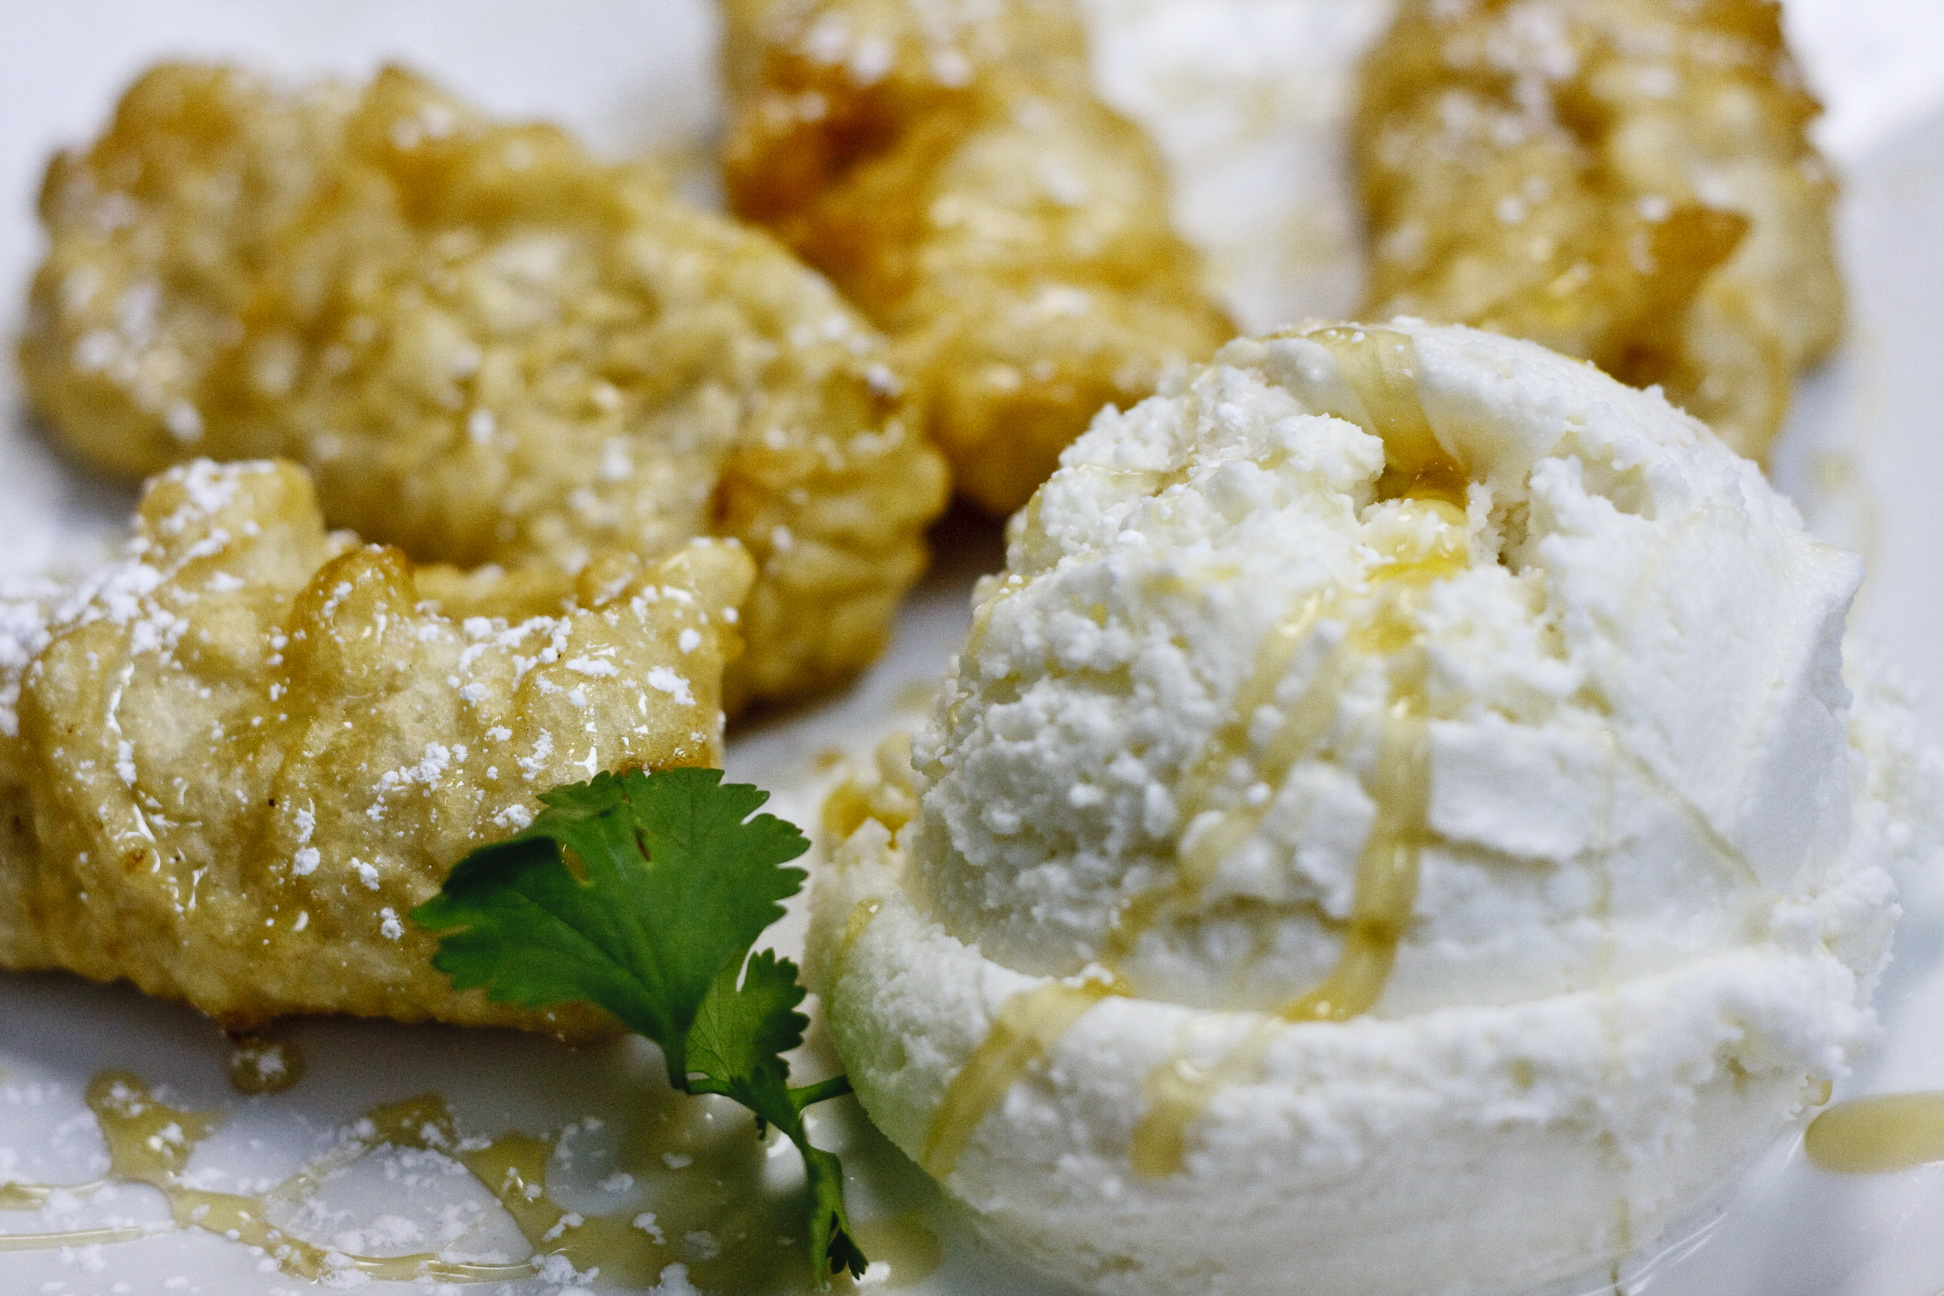 (59) Fried Banana with Coconut Ice Cream Image